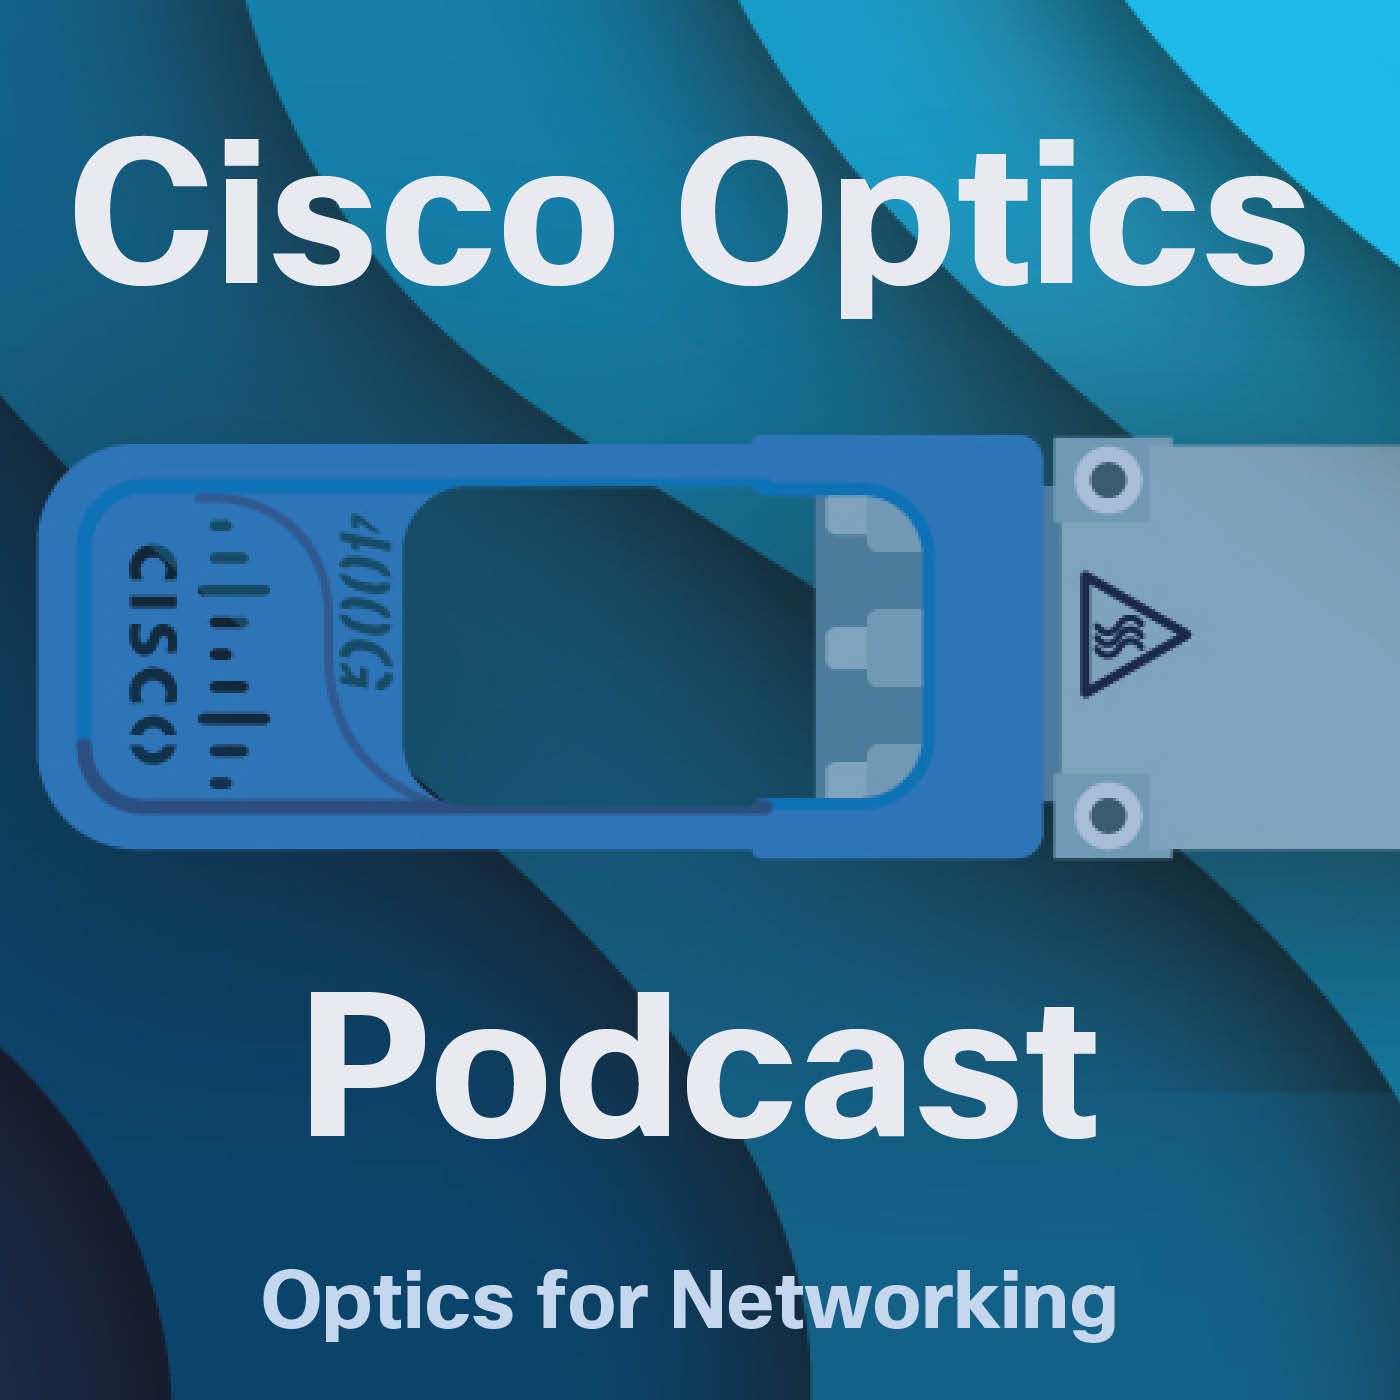 Demystifying fiber cable infrastructure, with Brian Kelly: Cisco Optics Podcast Episode 9 notes